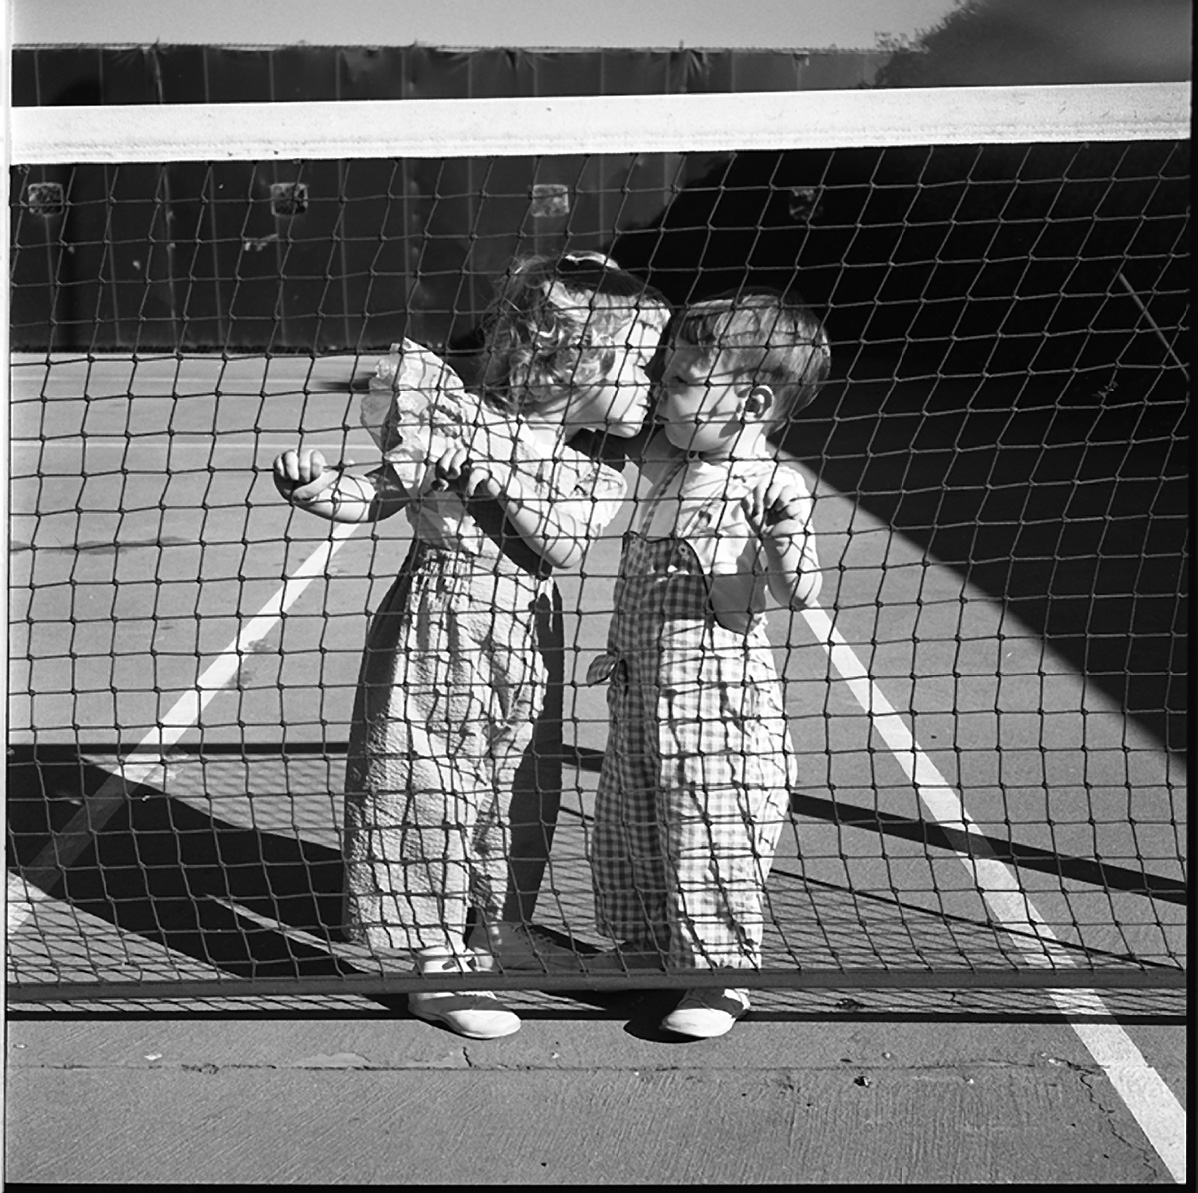 Vivian Maier, Two Children Kissing at Tennis Net, Los Angeles, August 1955